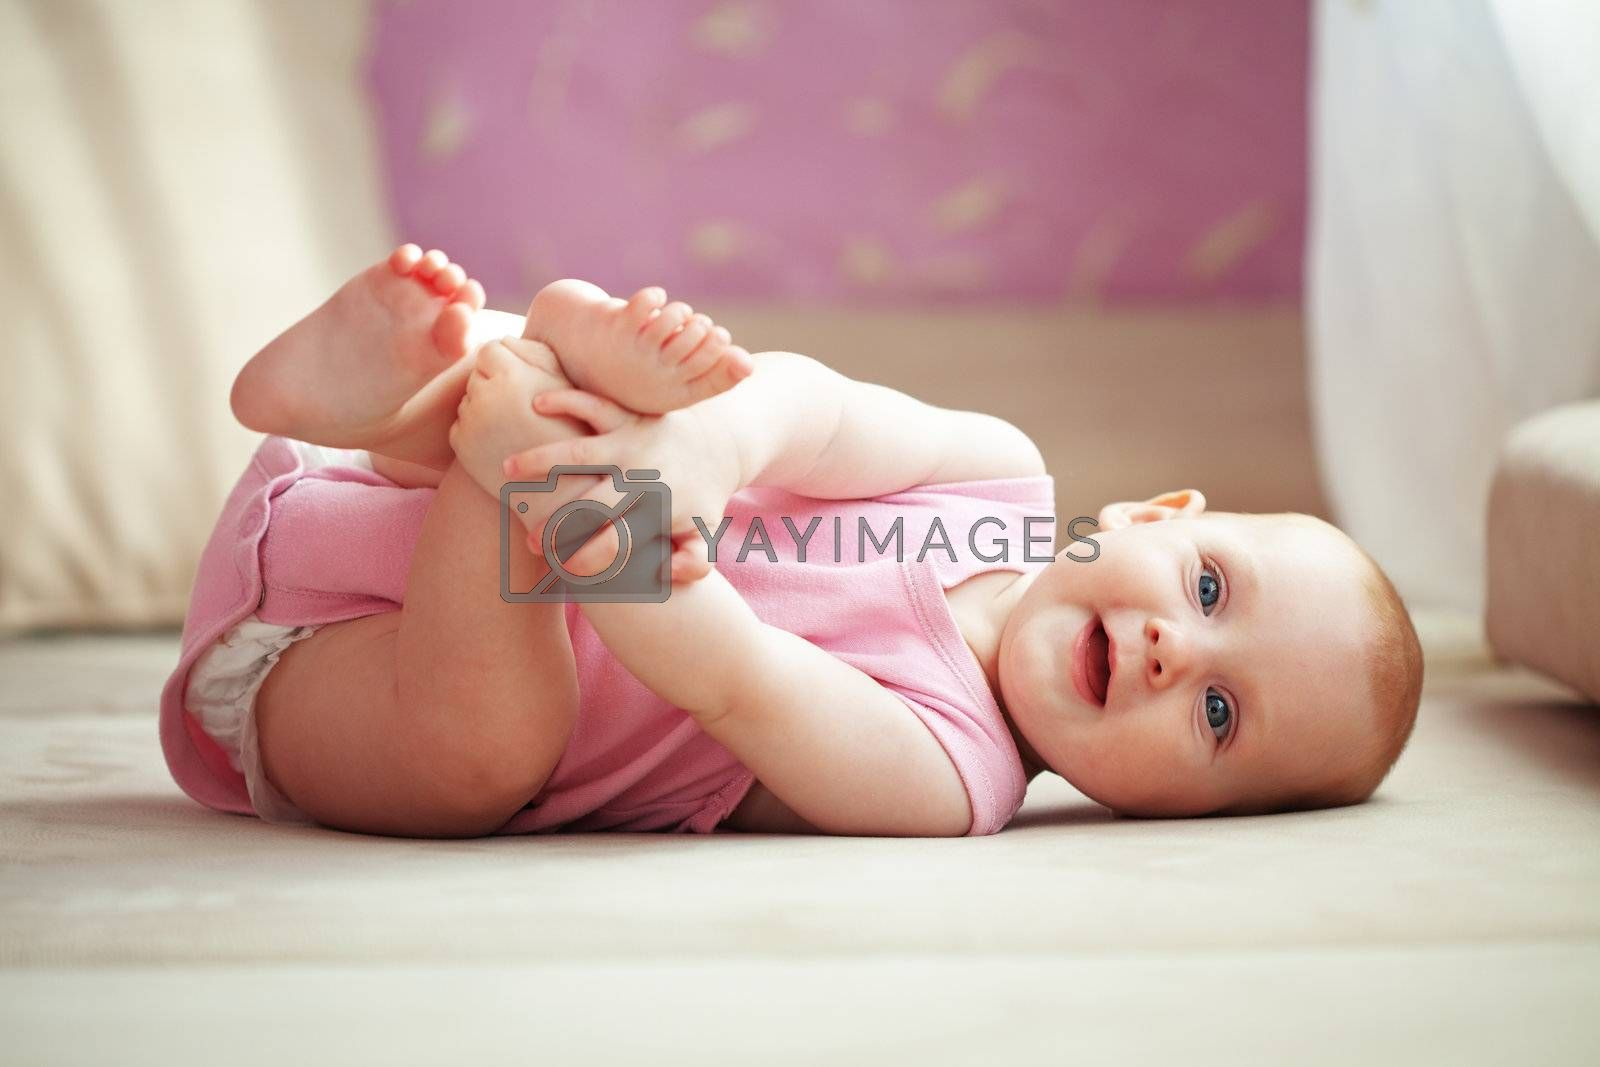 Picture of a baby lying in bed